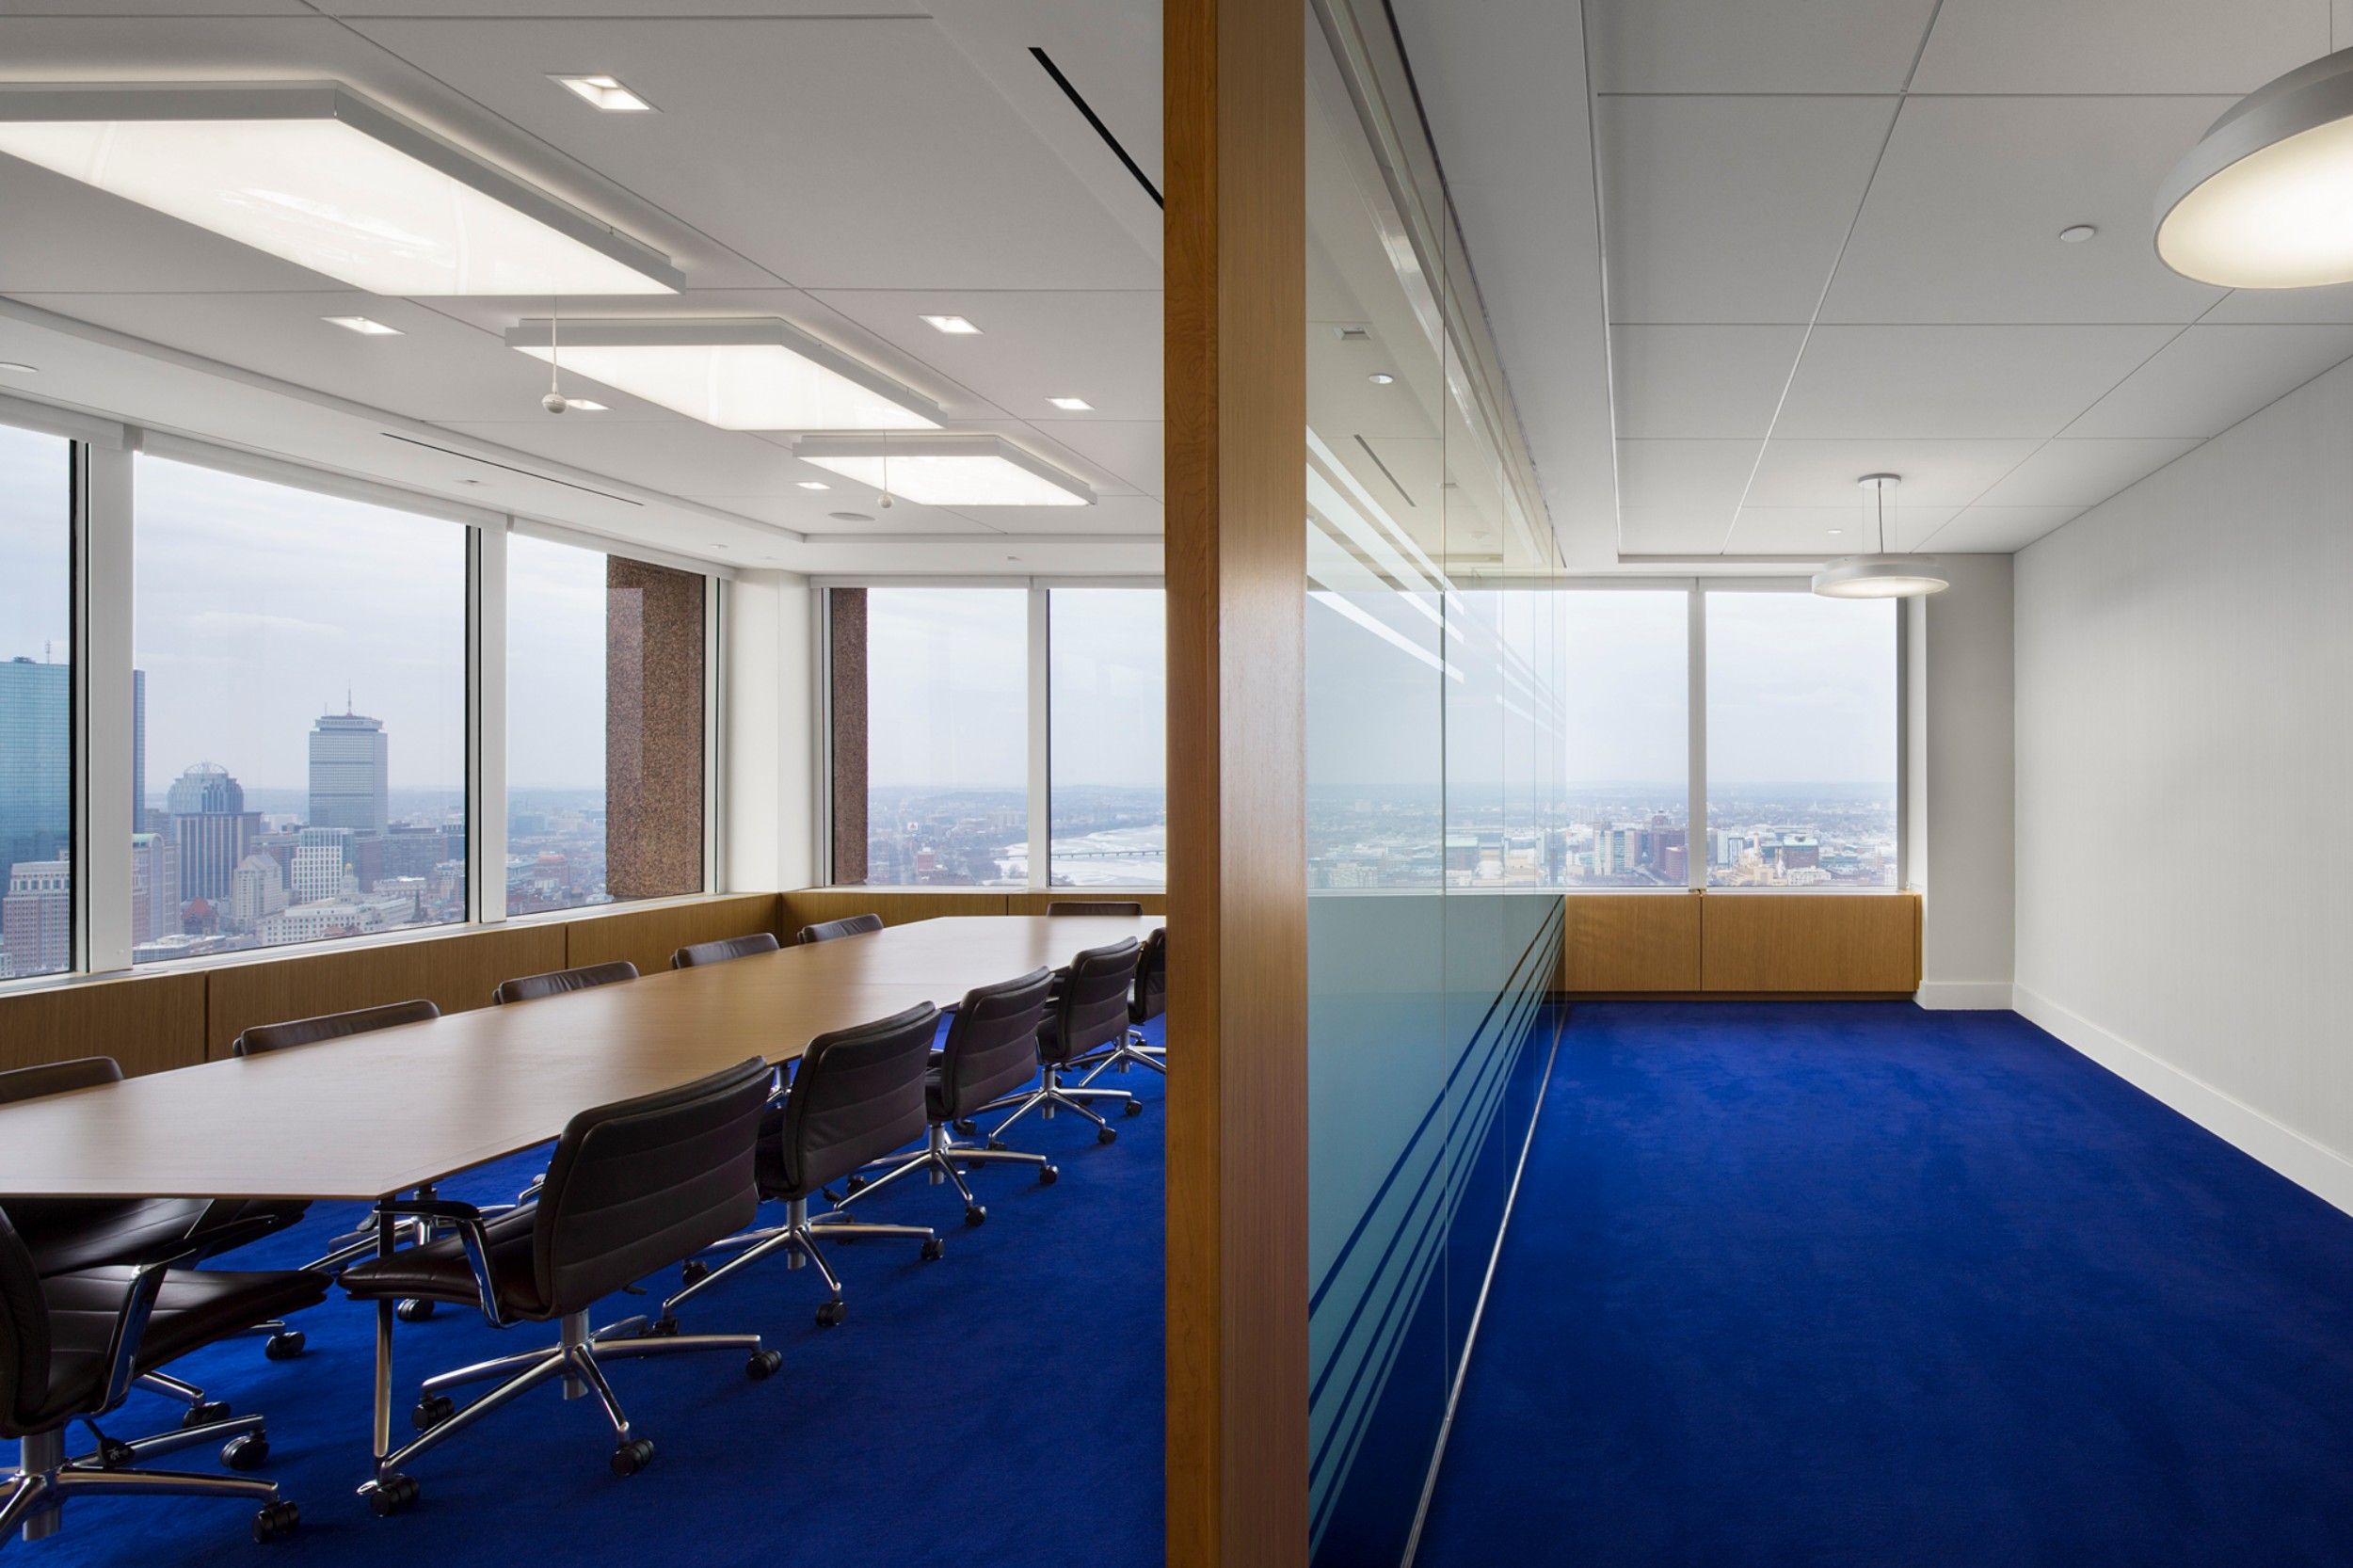 Corderman_Construction_Standard_Life_Investments_Financial_Office_Conference_Room.jpg